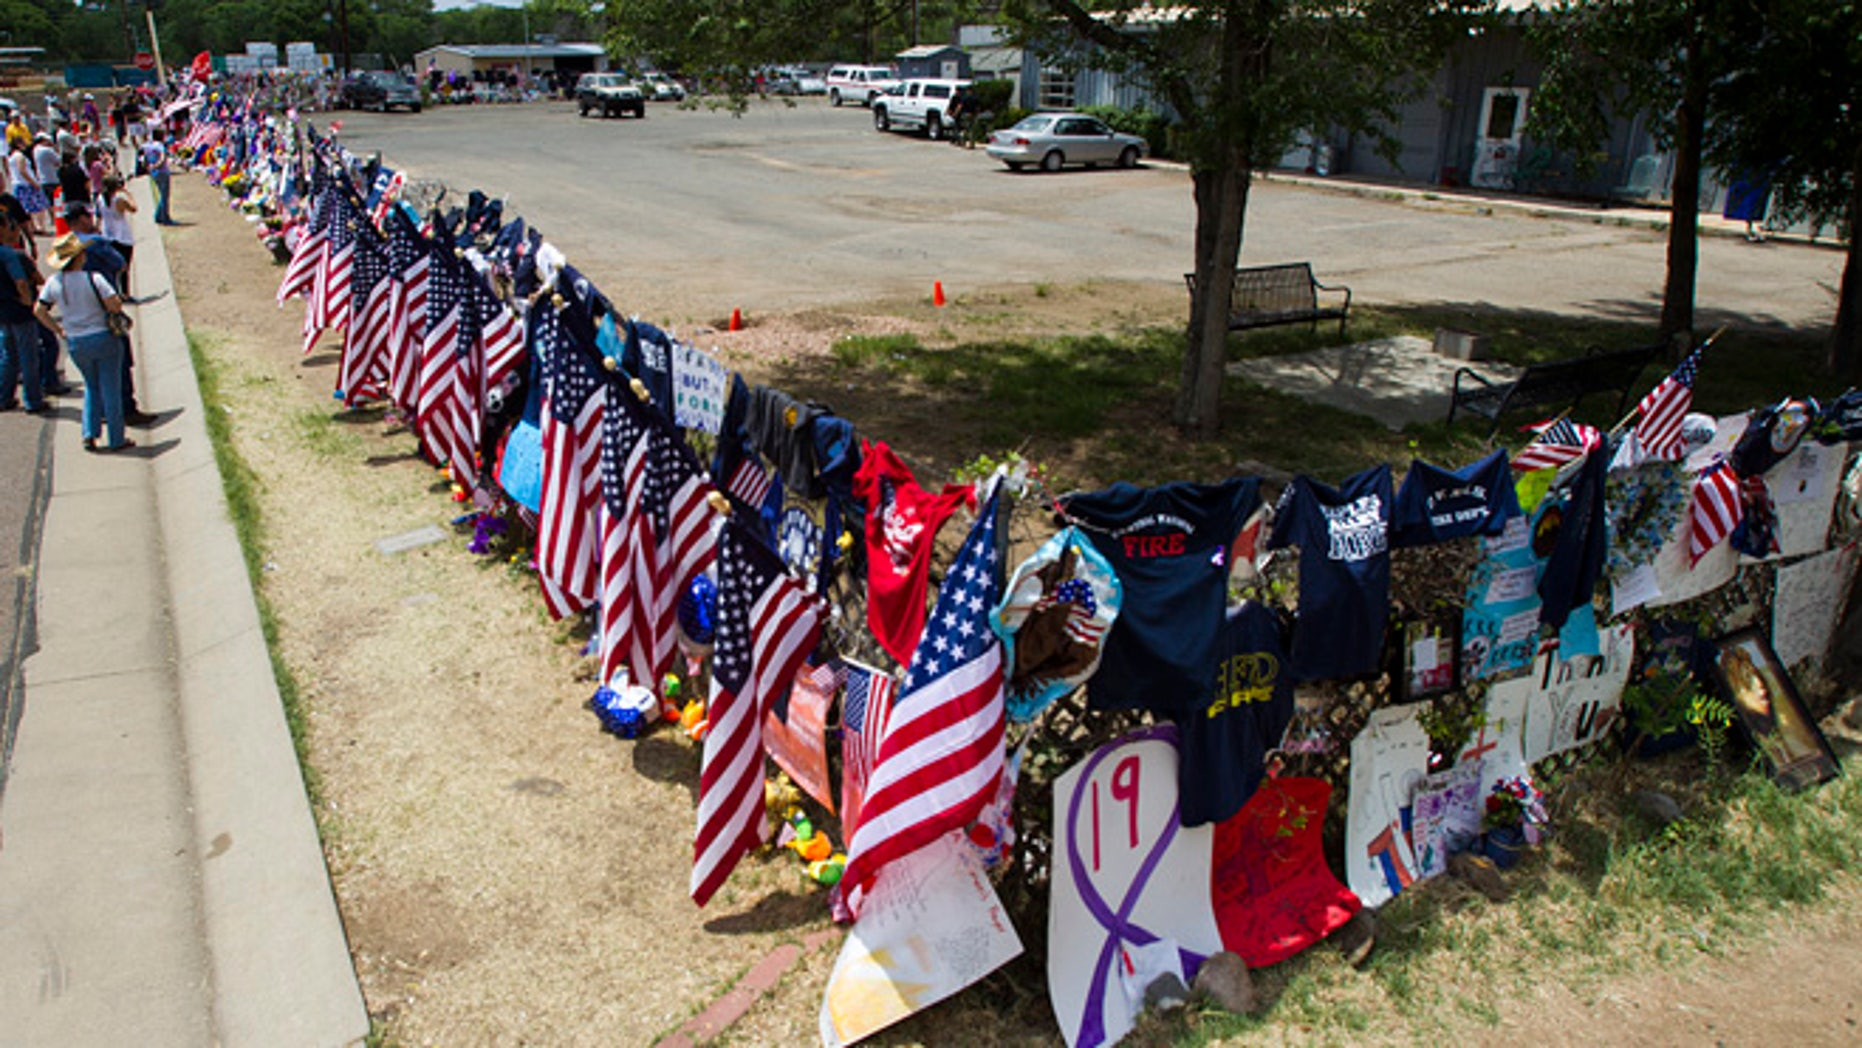 July 6, 2013: Items are displayed at a makeshift memorial at the Fire Station No. 7 memorial for fallen firefighters Saturday, July 6, 2013, in Prescott, Ariz. Nineteen Granite Mountain Hotshot firefighters were killed by an out-of-control blaze near Yarnell, Ariz. on June 30.